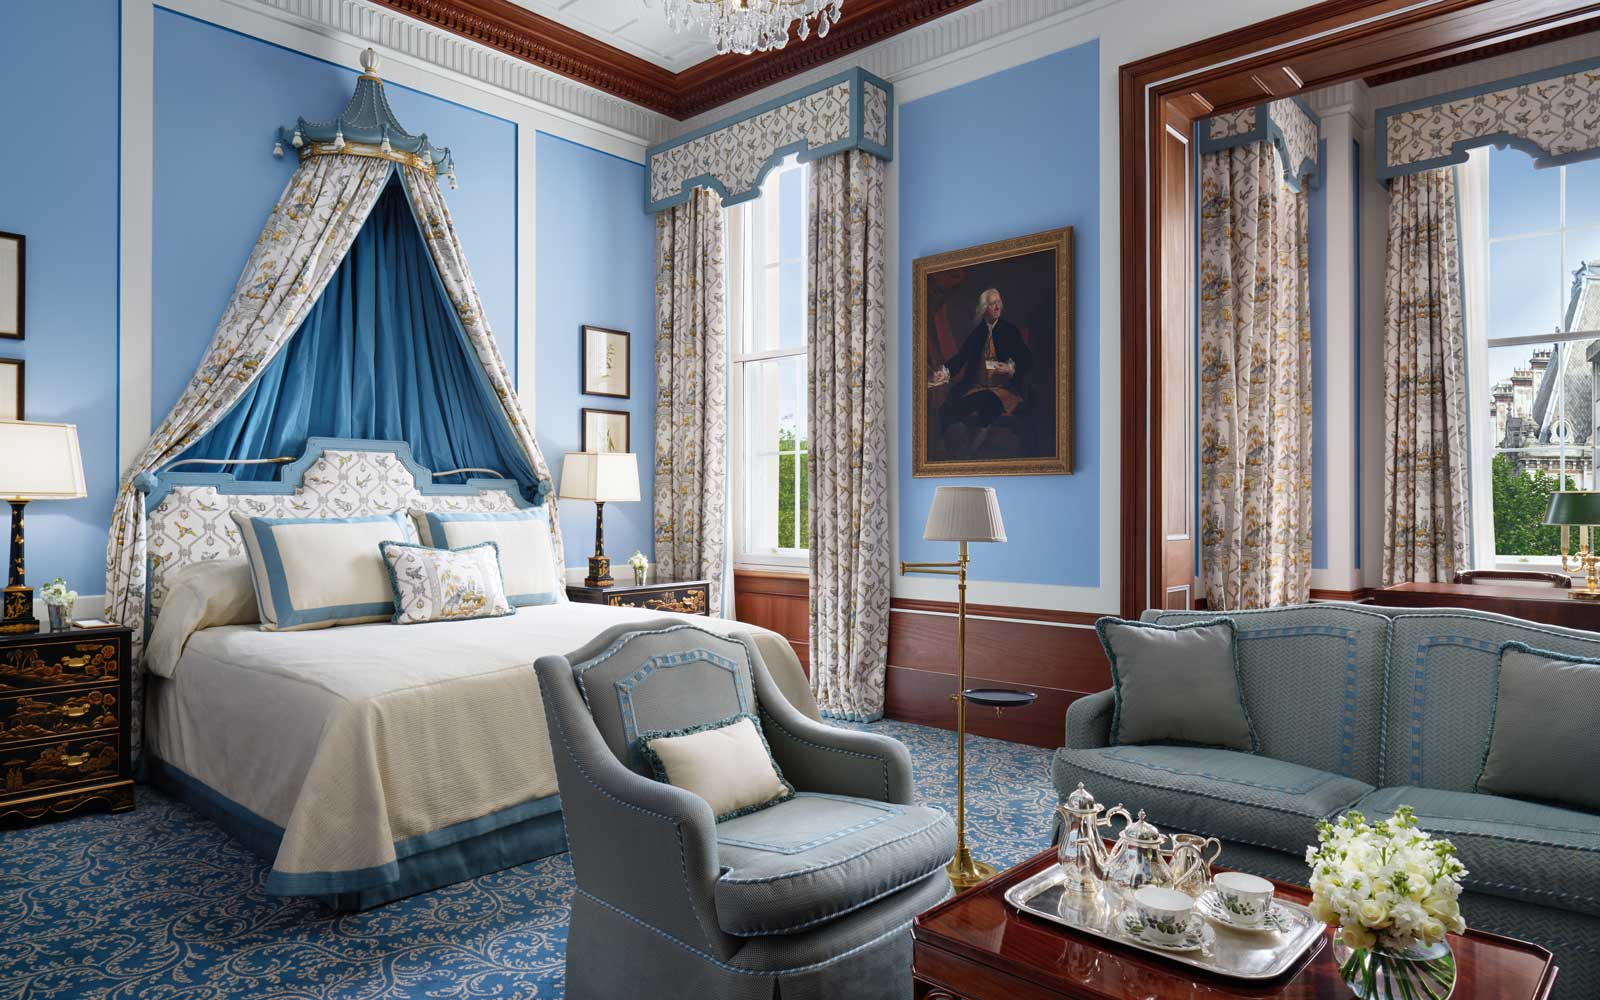 The Best Hotel in London Combines Luxury and History for an Unforgettable Stay